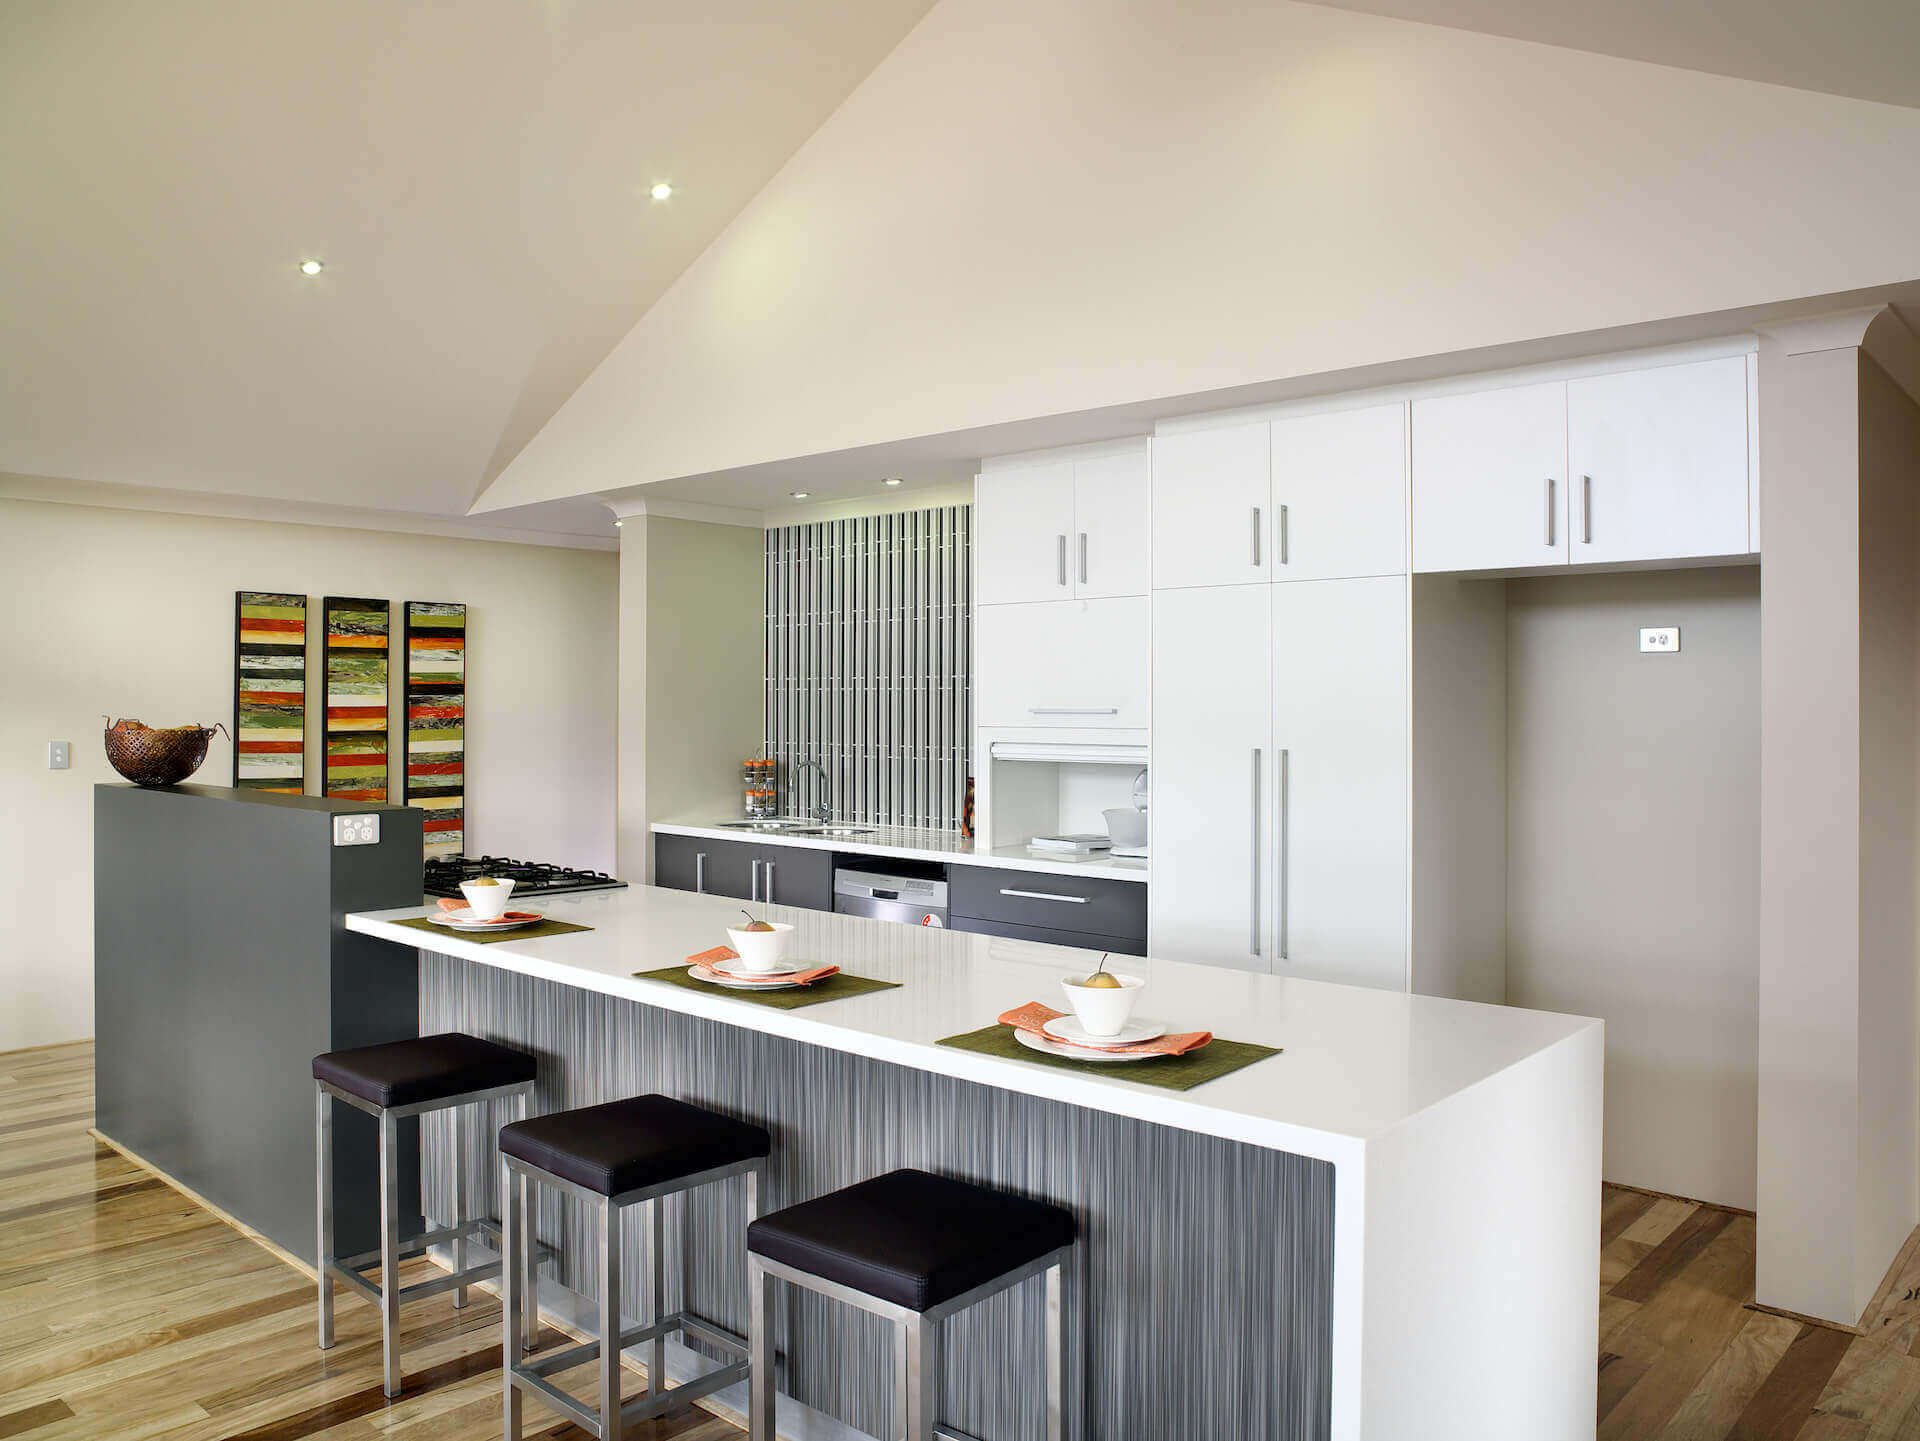 Rural Building Co - The Coastal View - open-plan kitchen with Corian bench top